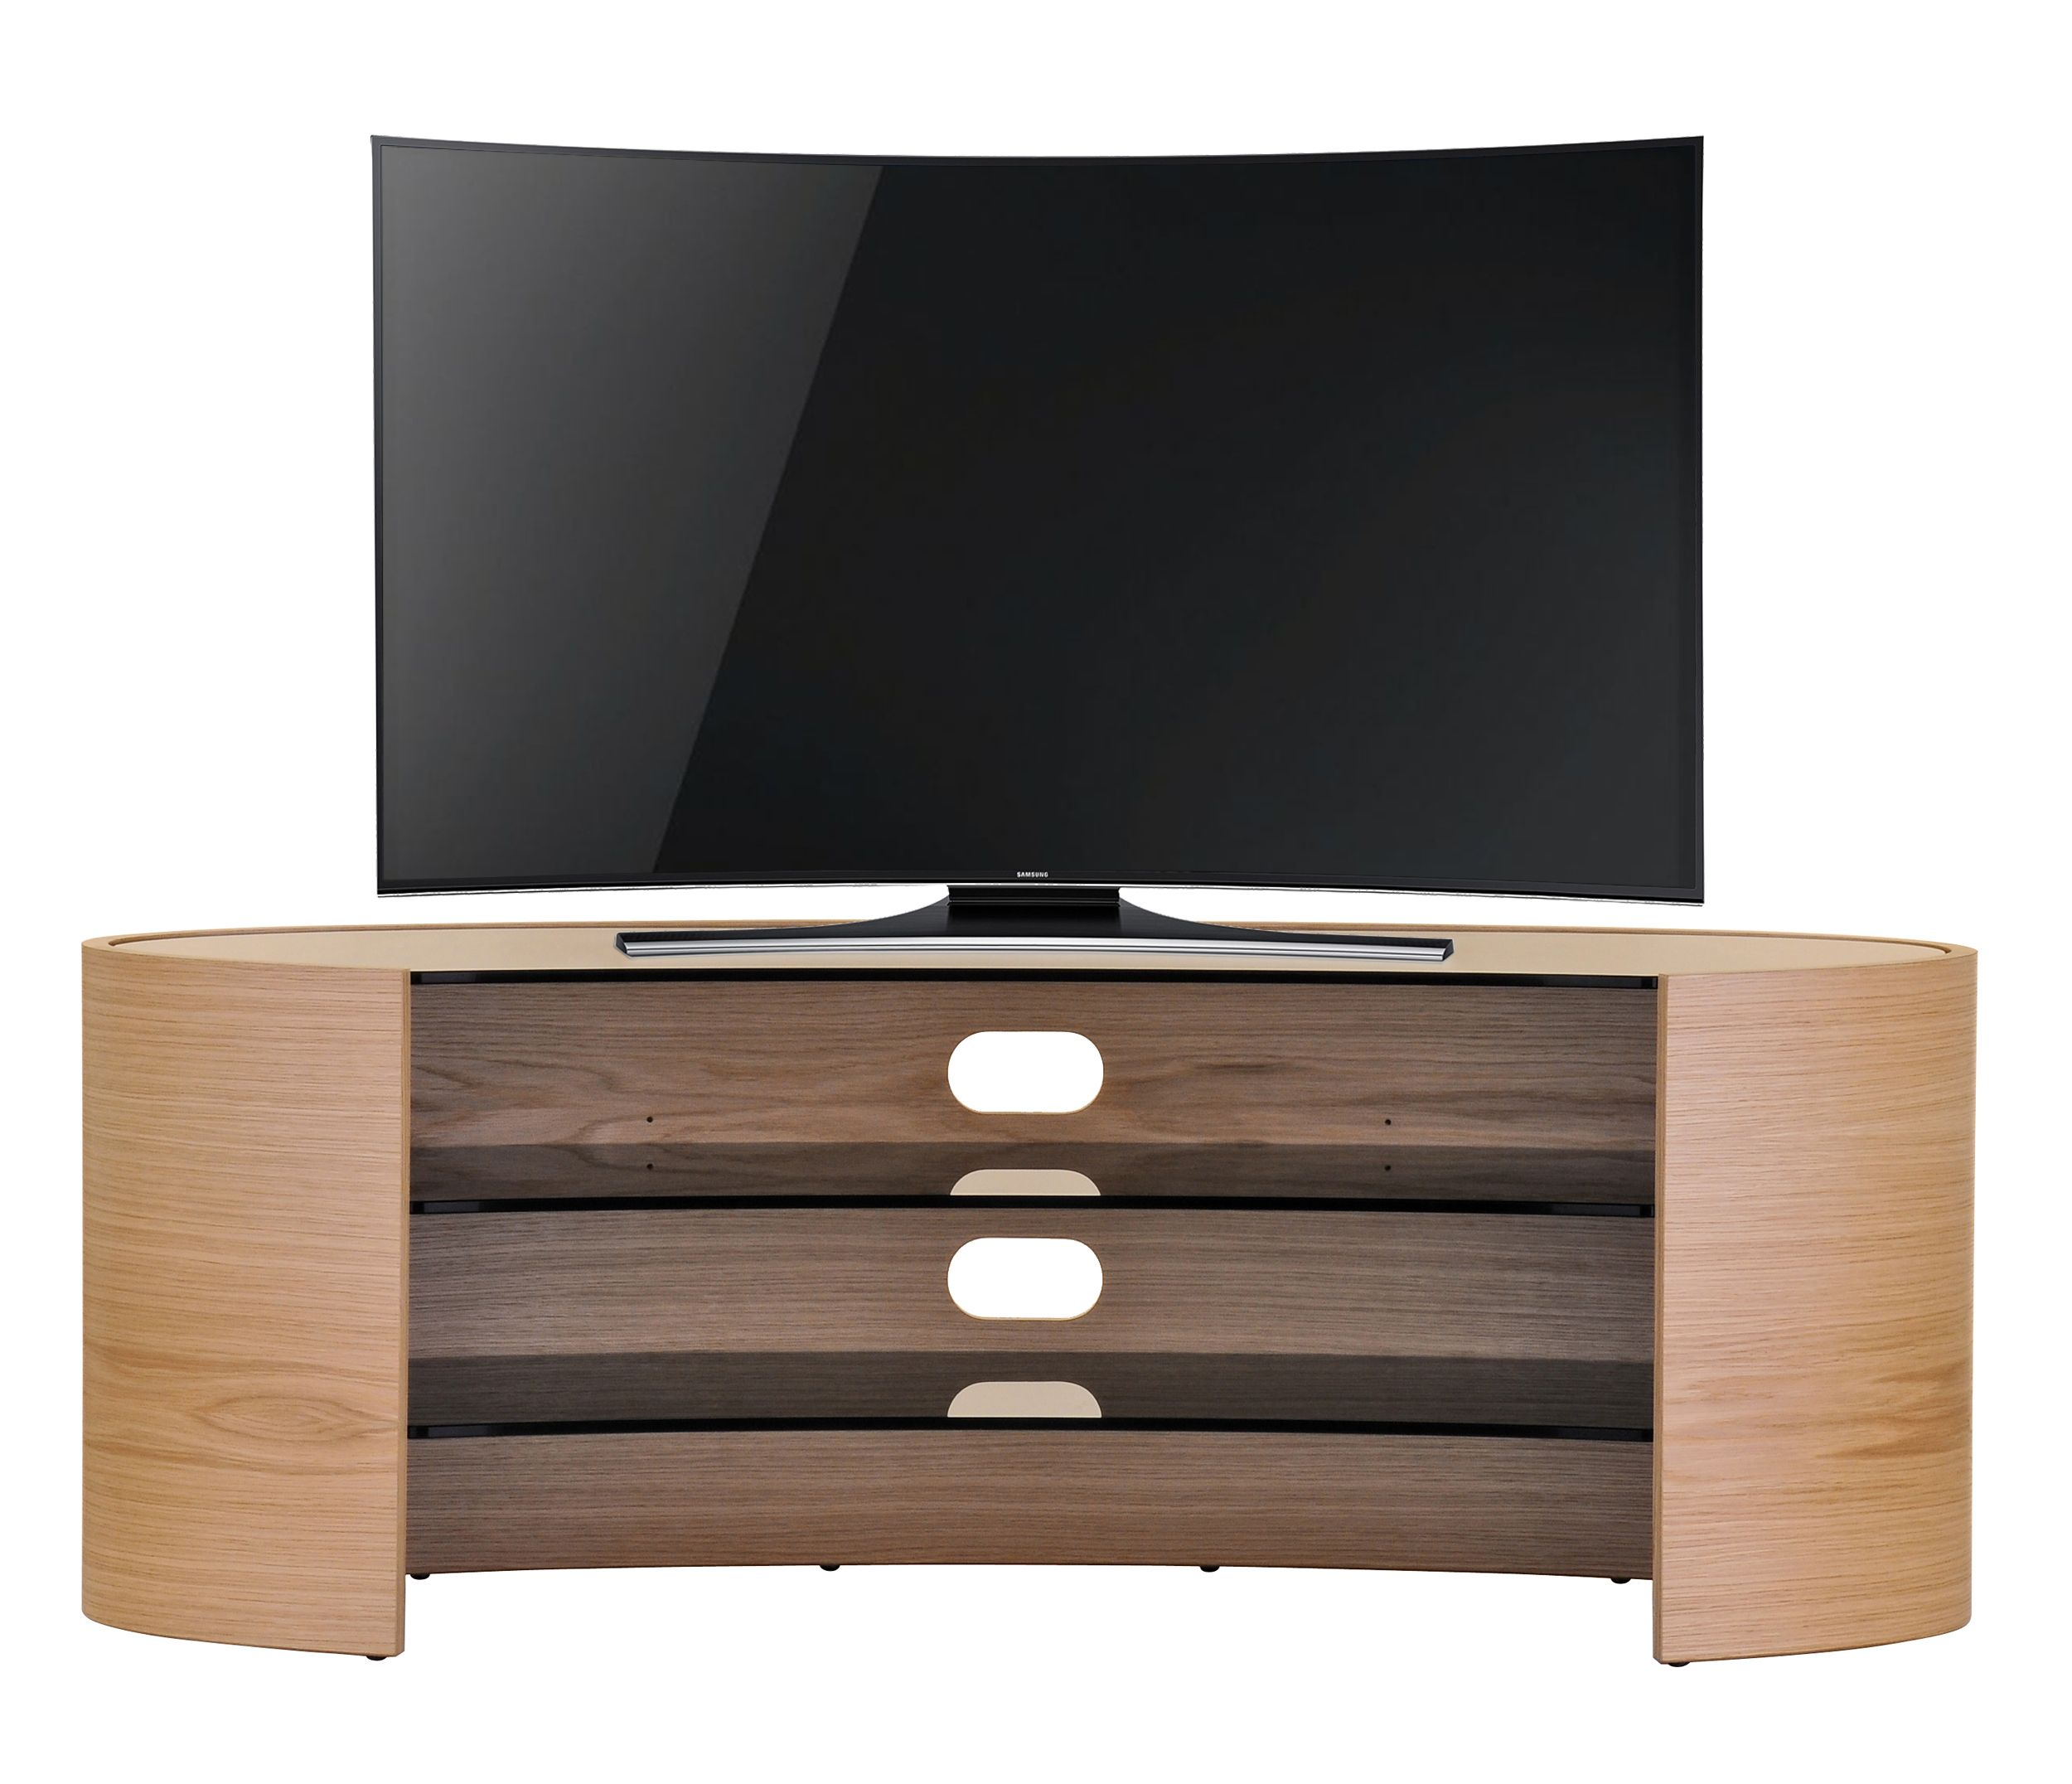 The Sublime Rolling Curves Of The Elliptical Home Theatre Unit  # Muebles Camarillo